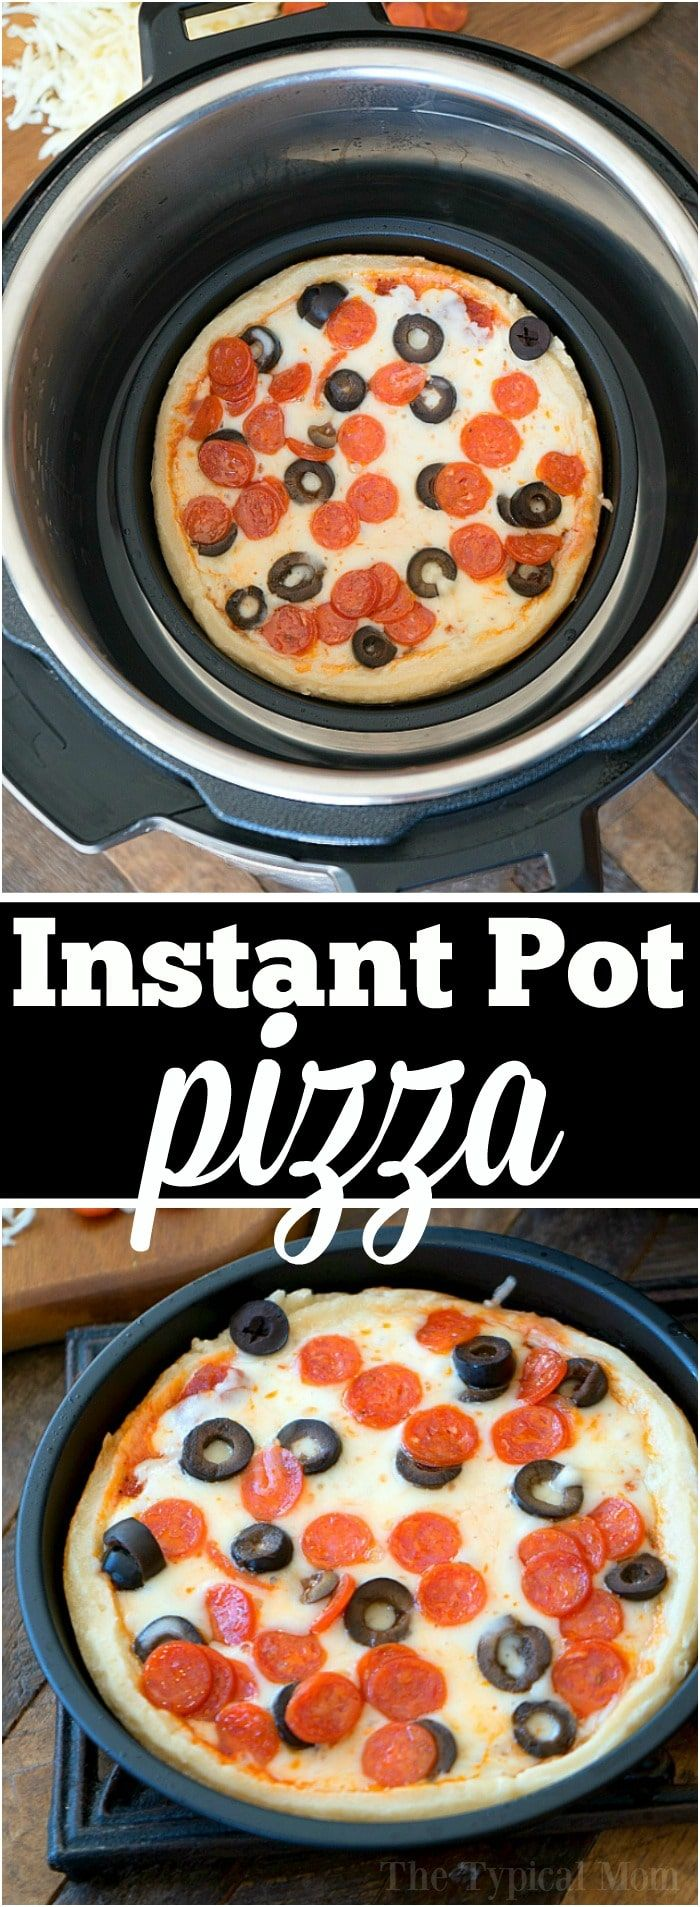 If you've been wondering how to make an Instant Pot pizza I have the answer for you!! We have made these individual pizzas in our pressure cooker for weeks now and the kids love it for dinner. It's simple once you have the right pan, ingredients, and instructions. Try it this week and let us know what you think! #instantpot #pressurecooker #pizza #recipe via @thetypicalmom